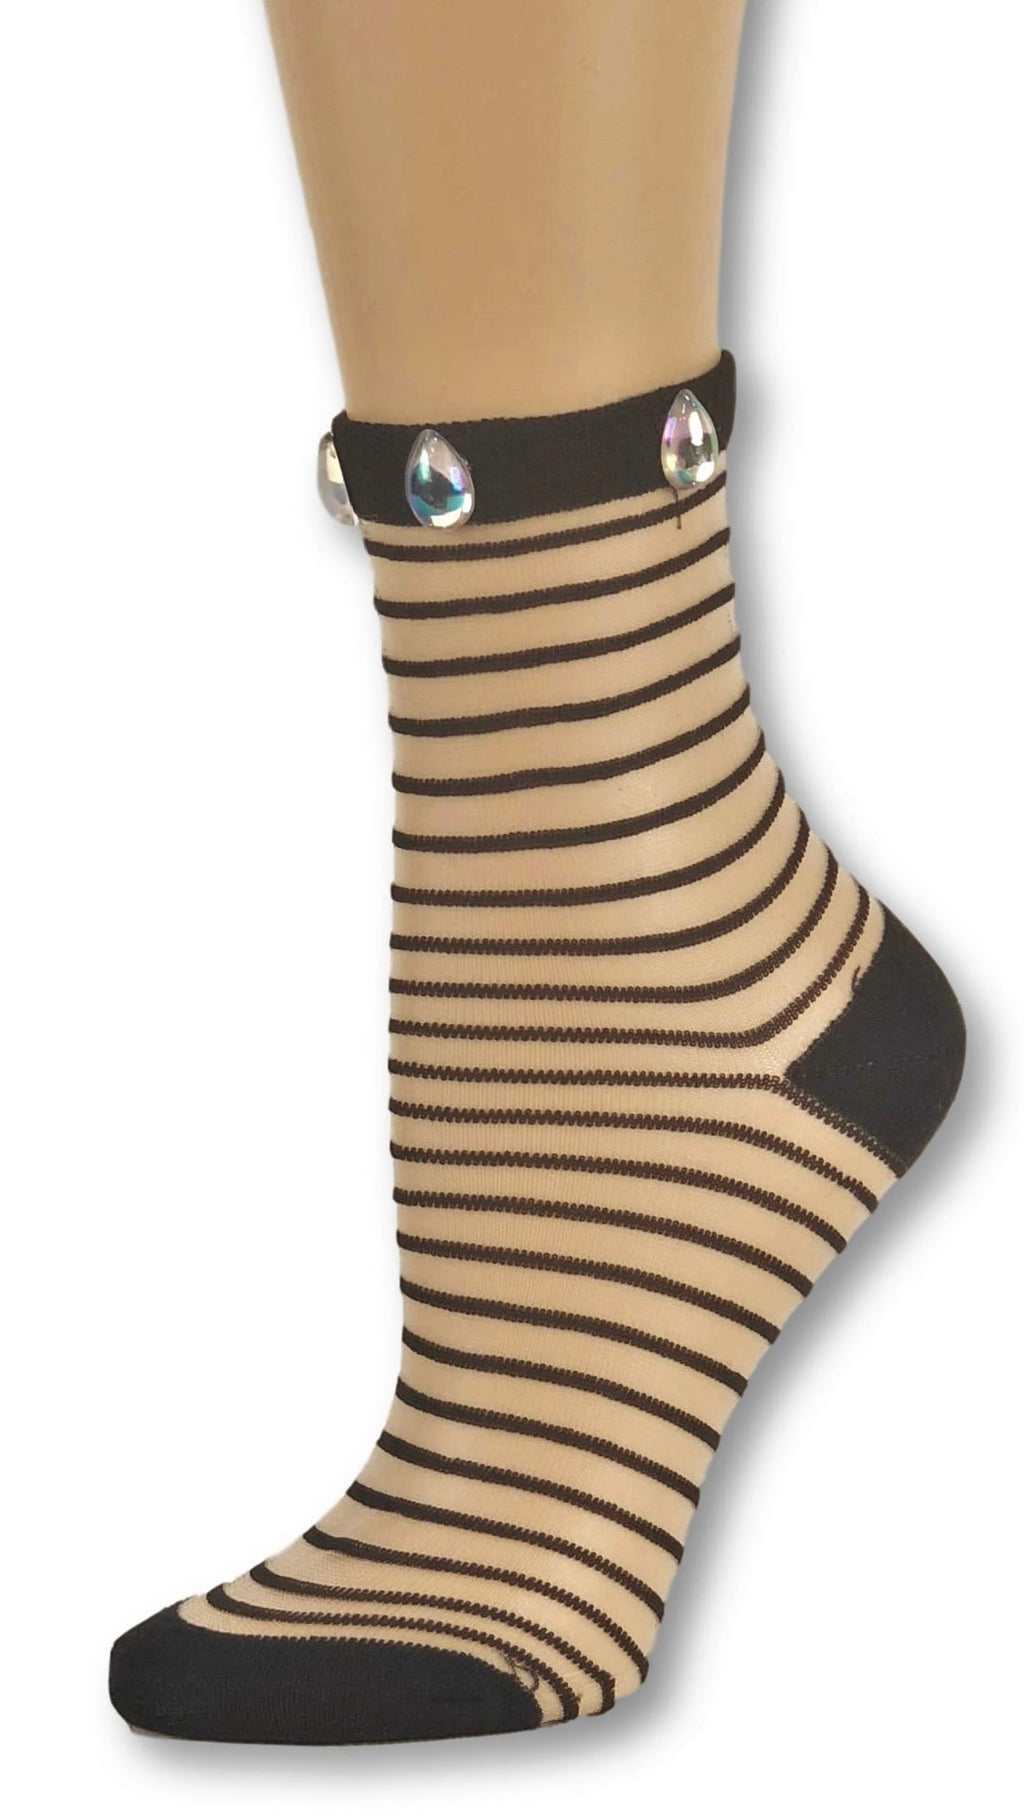 Black Striped Custom Sheer Socks with beads - Global Trendz Fashion®